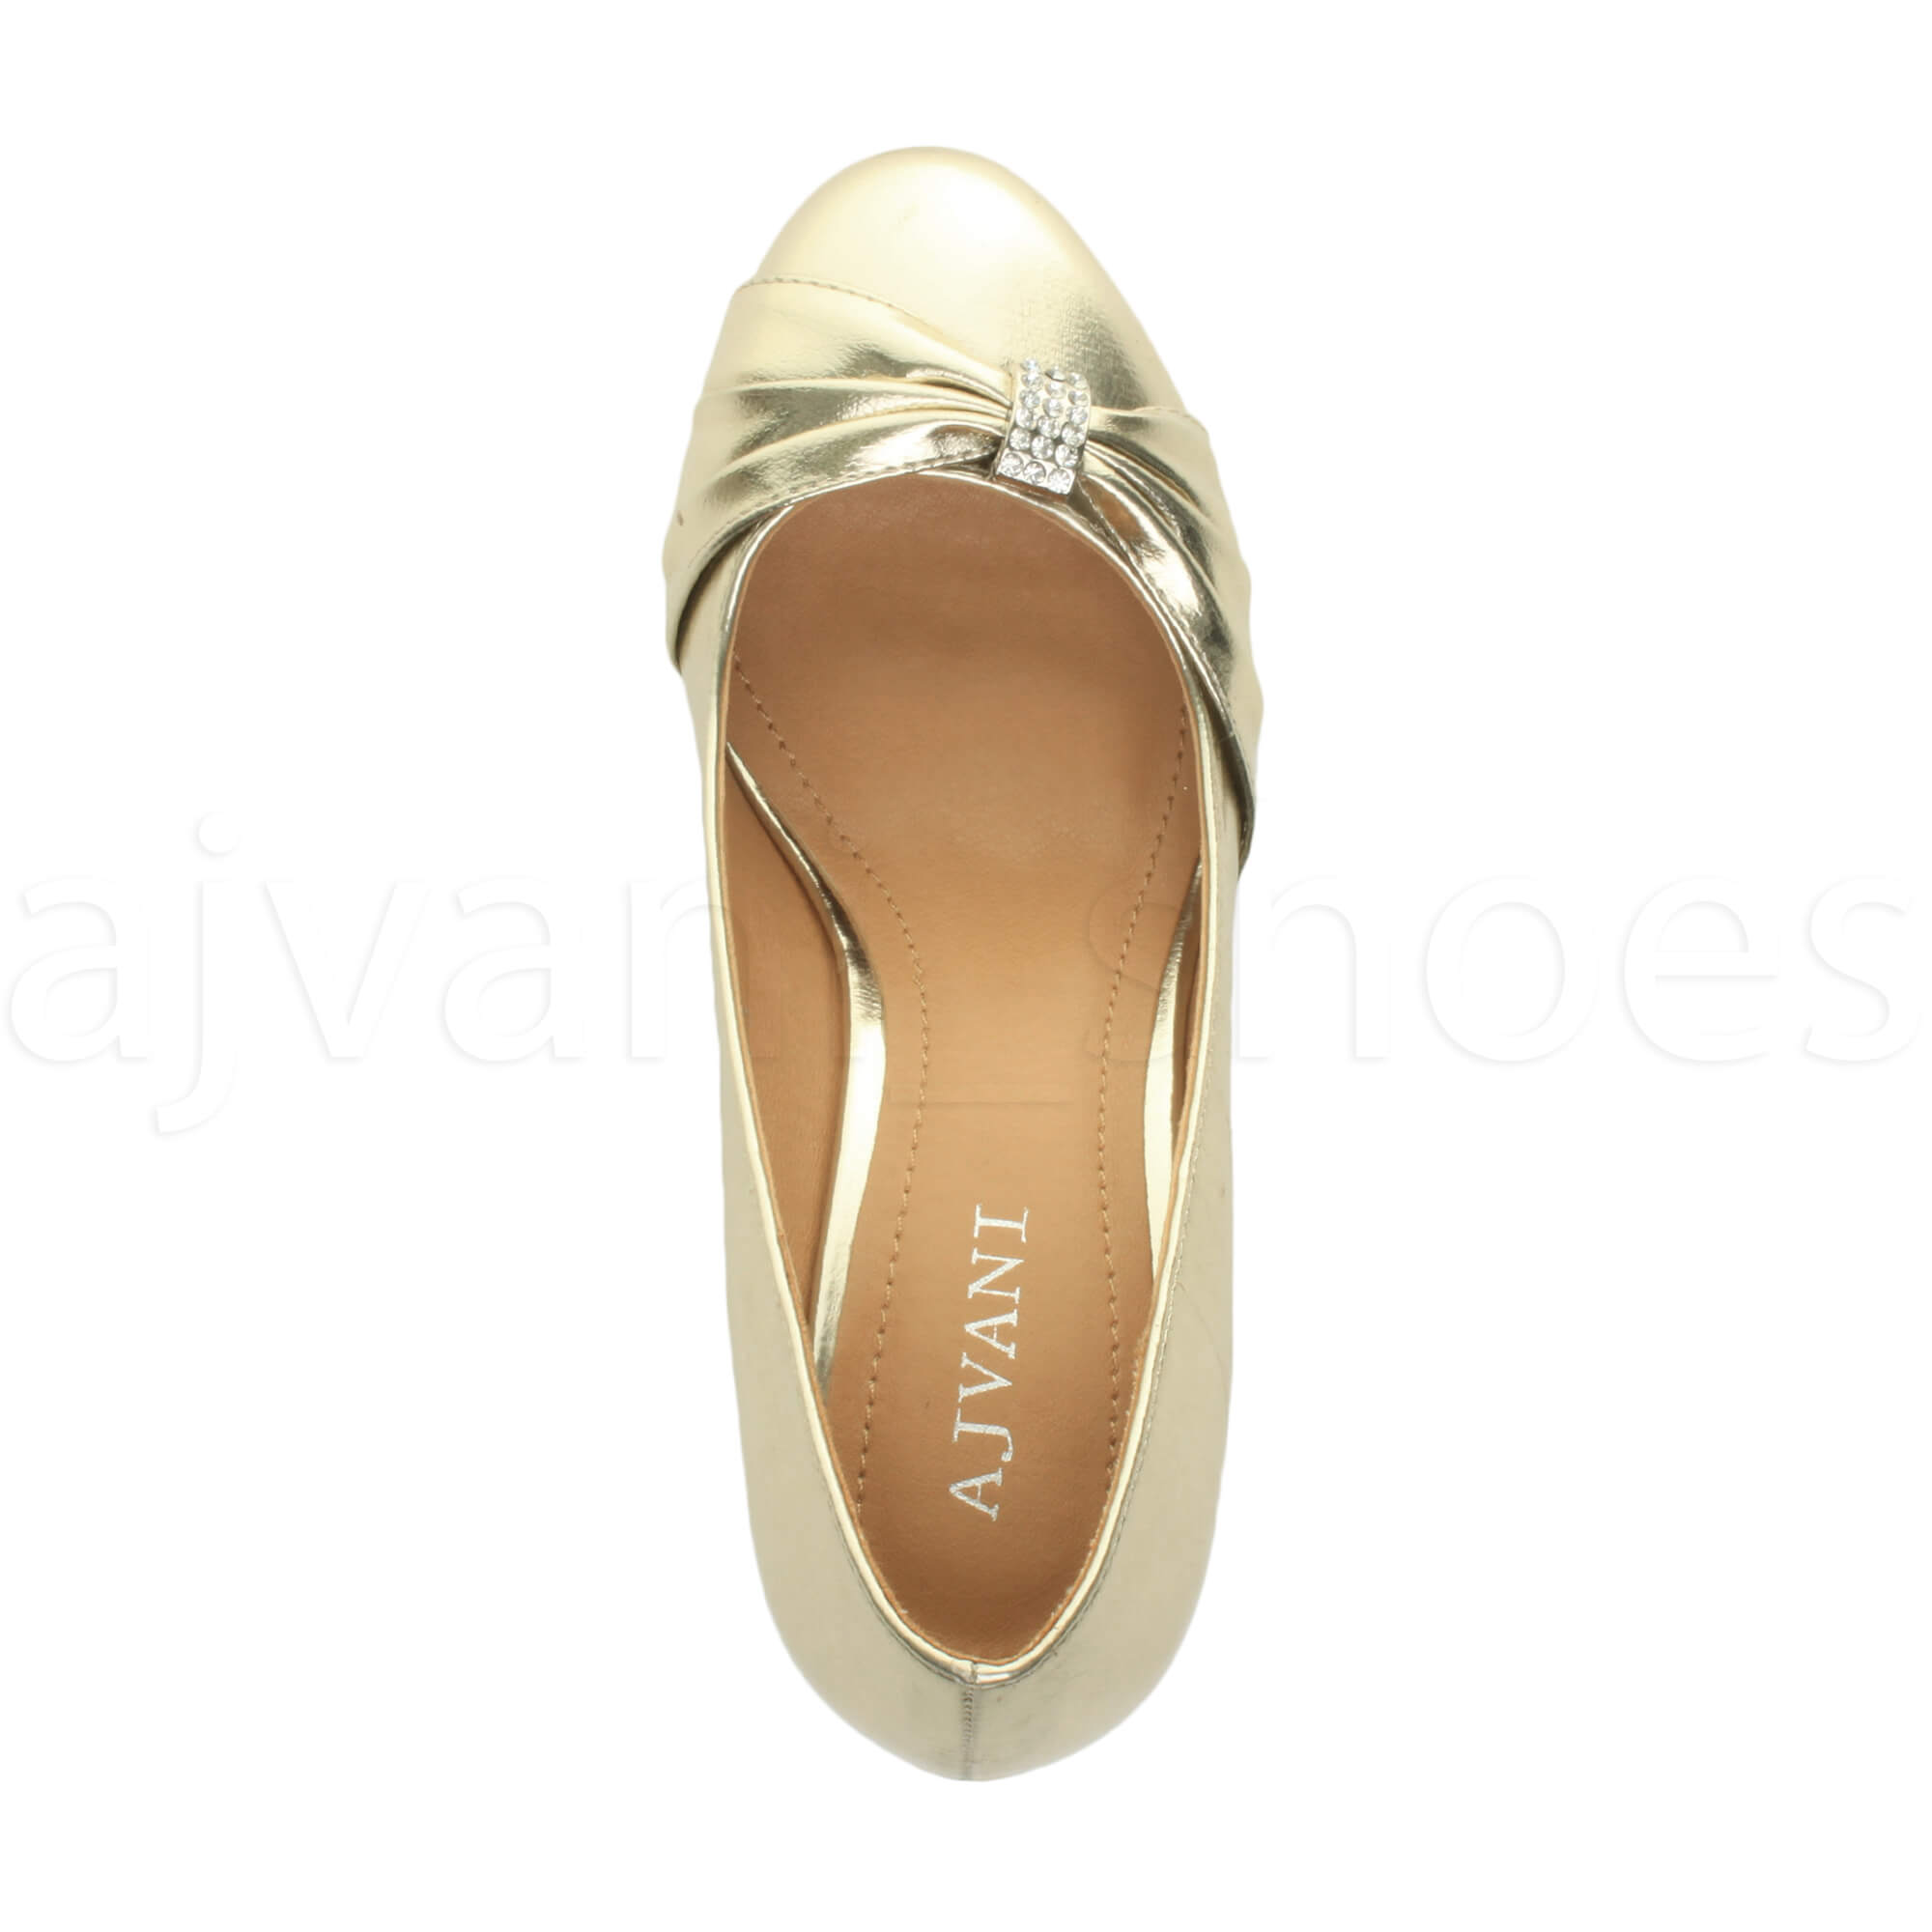 WOMENS-LADIES-MID-HEEL-RUCHED-DIAMANTE-WEDDING-PROM-EVENING-COURT-SHOES-SIZE thumbnail 32